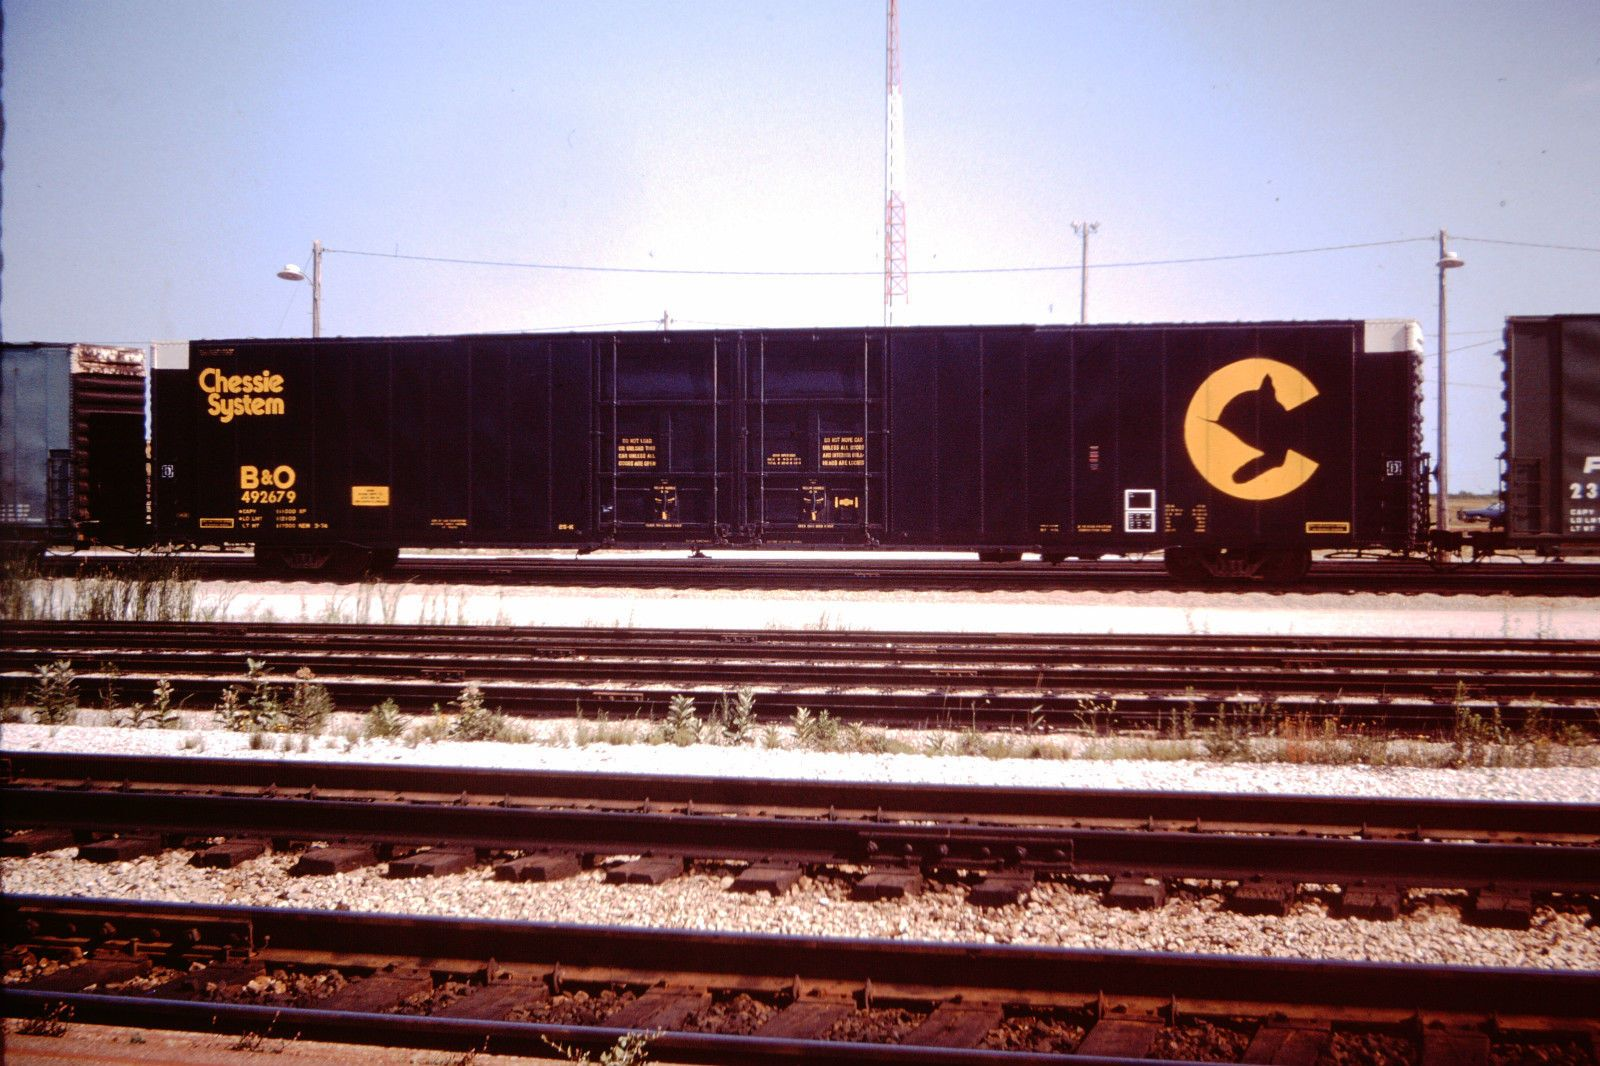 Chessie System 89 Auto Parts Boxcar B O 492679 On The Cn At